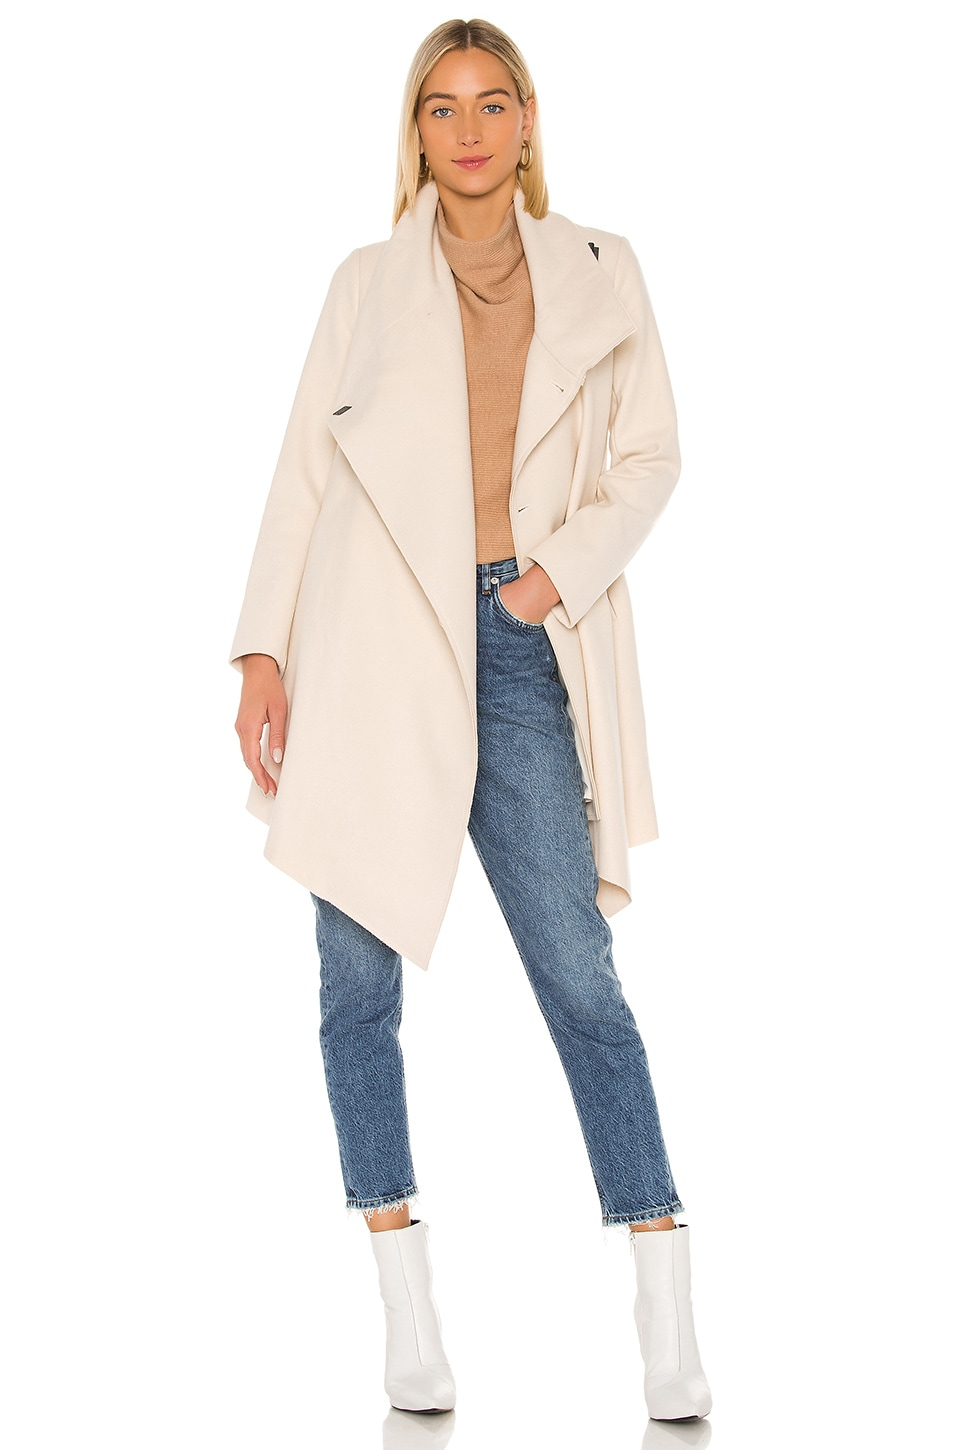 ALLSAINTS City Monument Coat in Oyster White